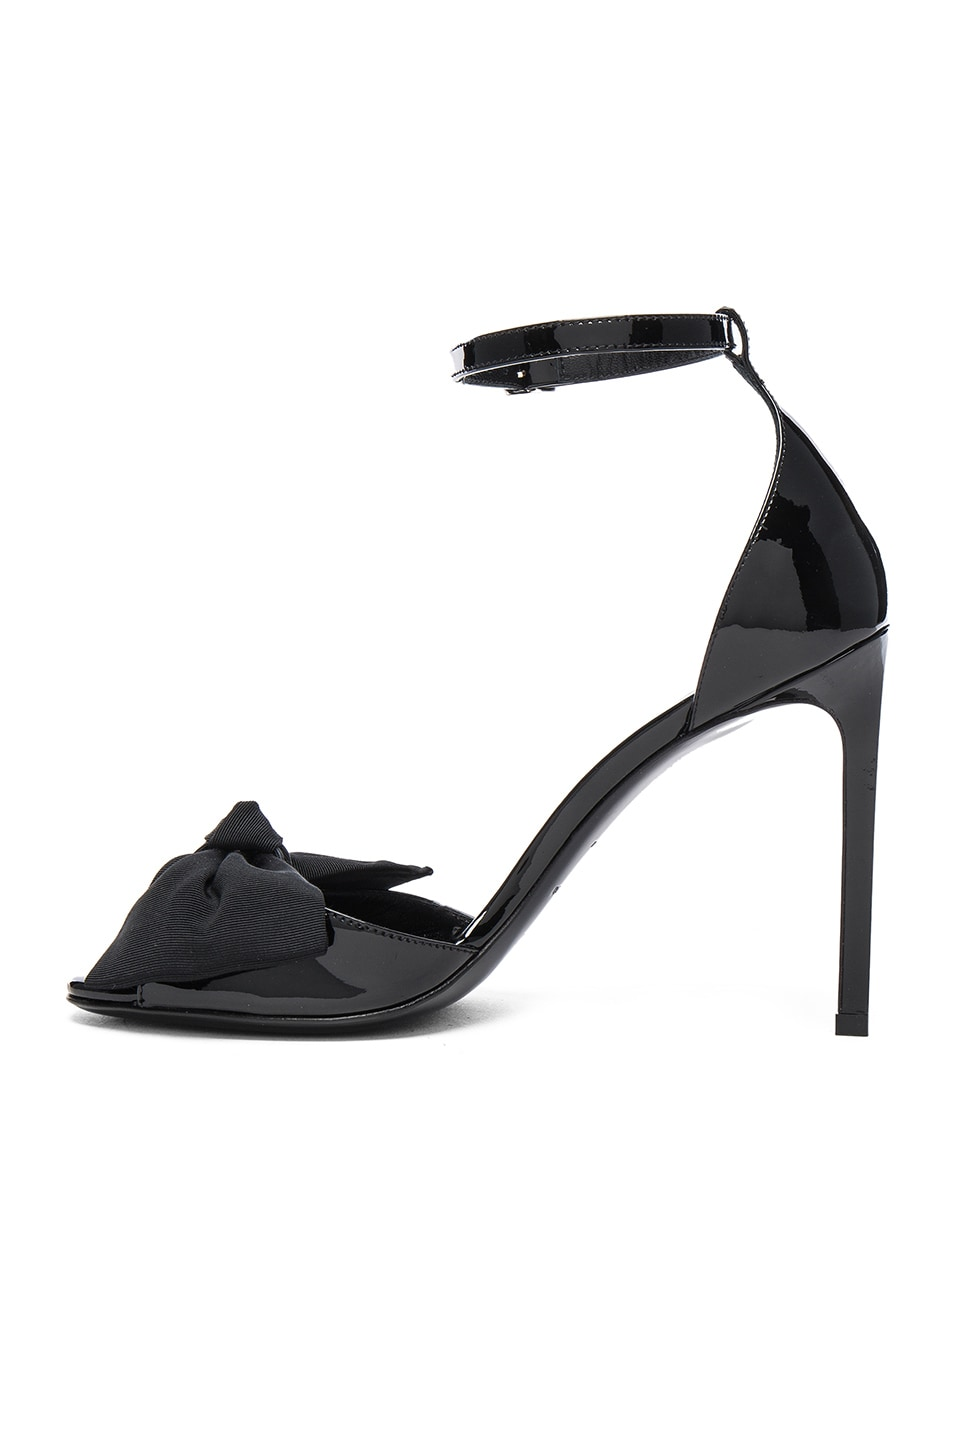 Image 5 of Saint Laurent Patent Leather Jane Bow Sandals in Black